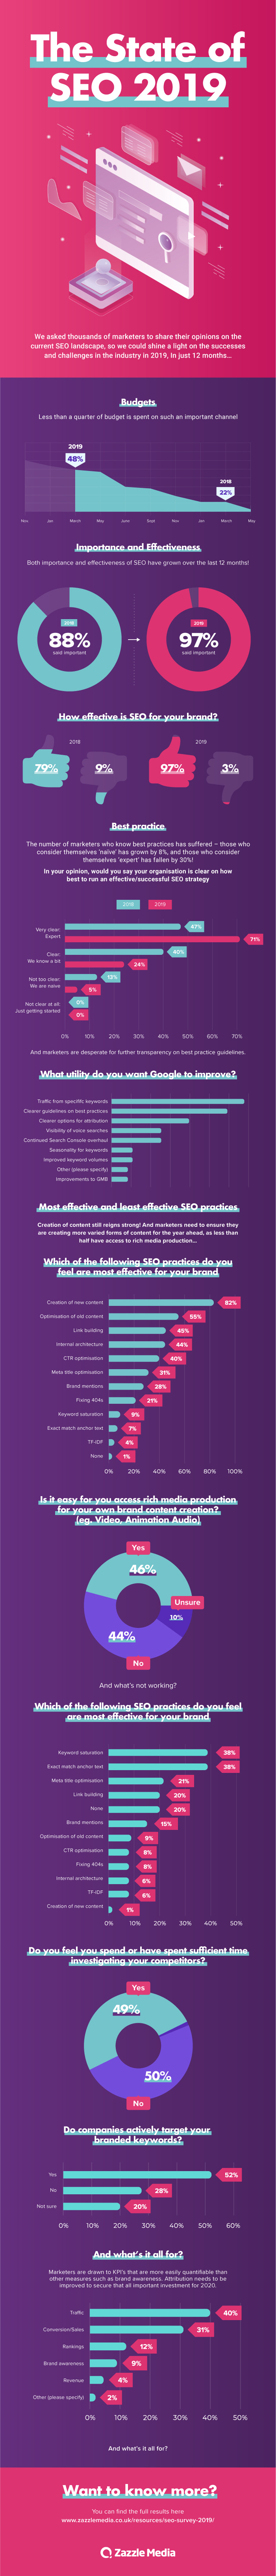 Infographic looks at SEO trends and shifts